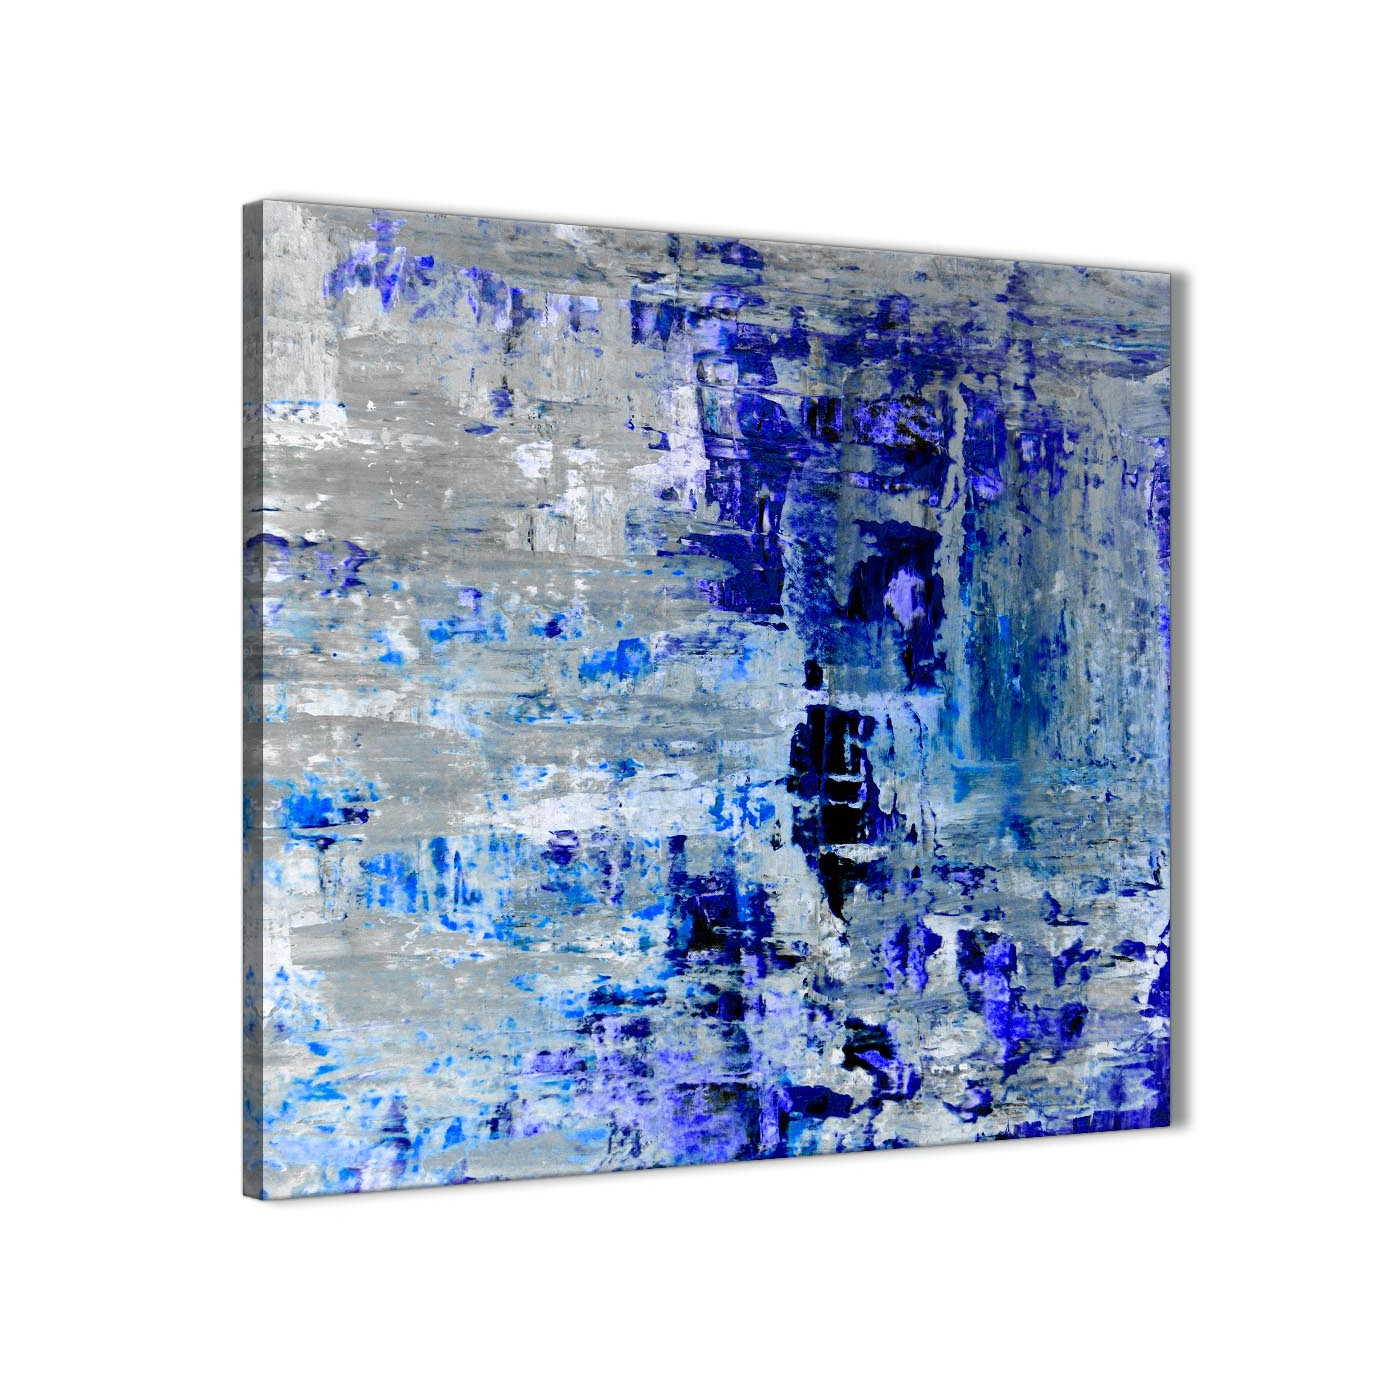 Abstract Art Prints On Canvas Indigo Blue Grey Abstract Painting Wall Art Print Canvas Modern 79cm Square 1s358l